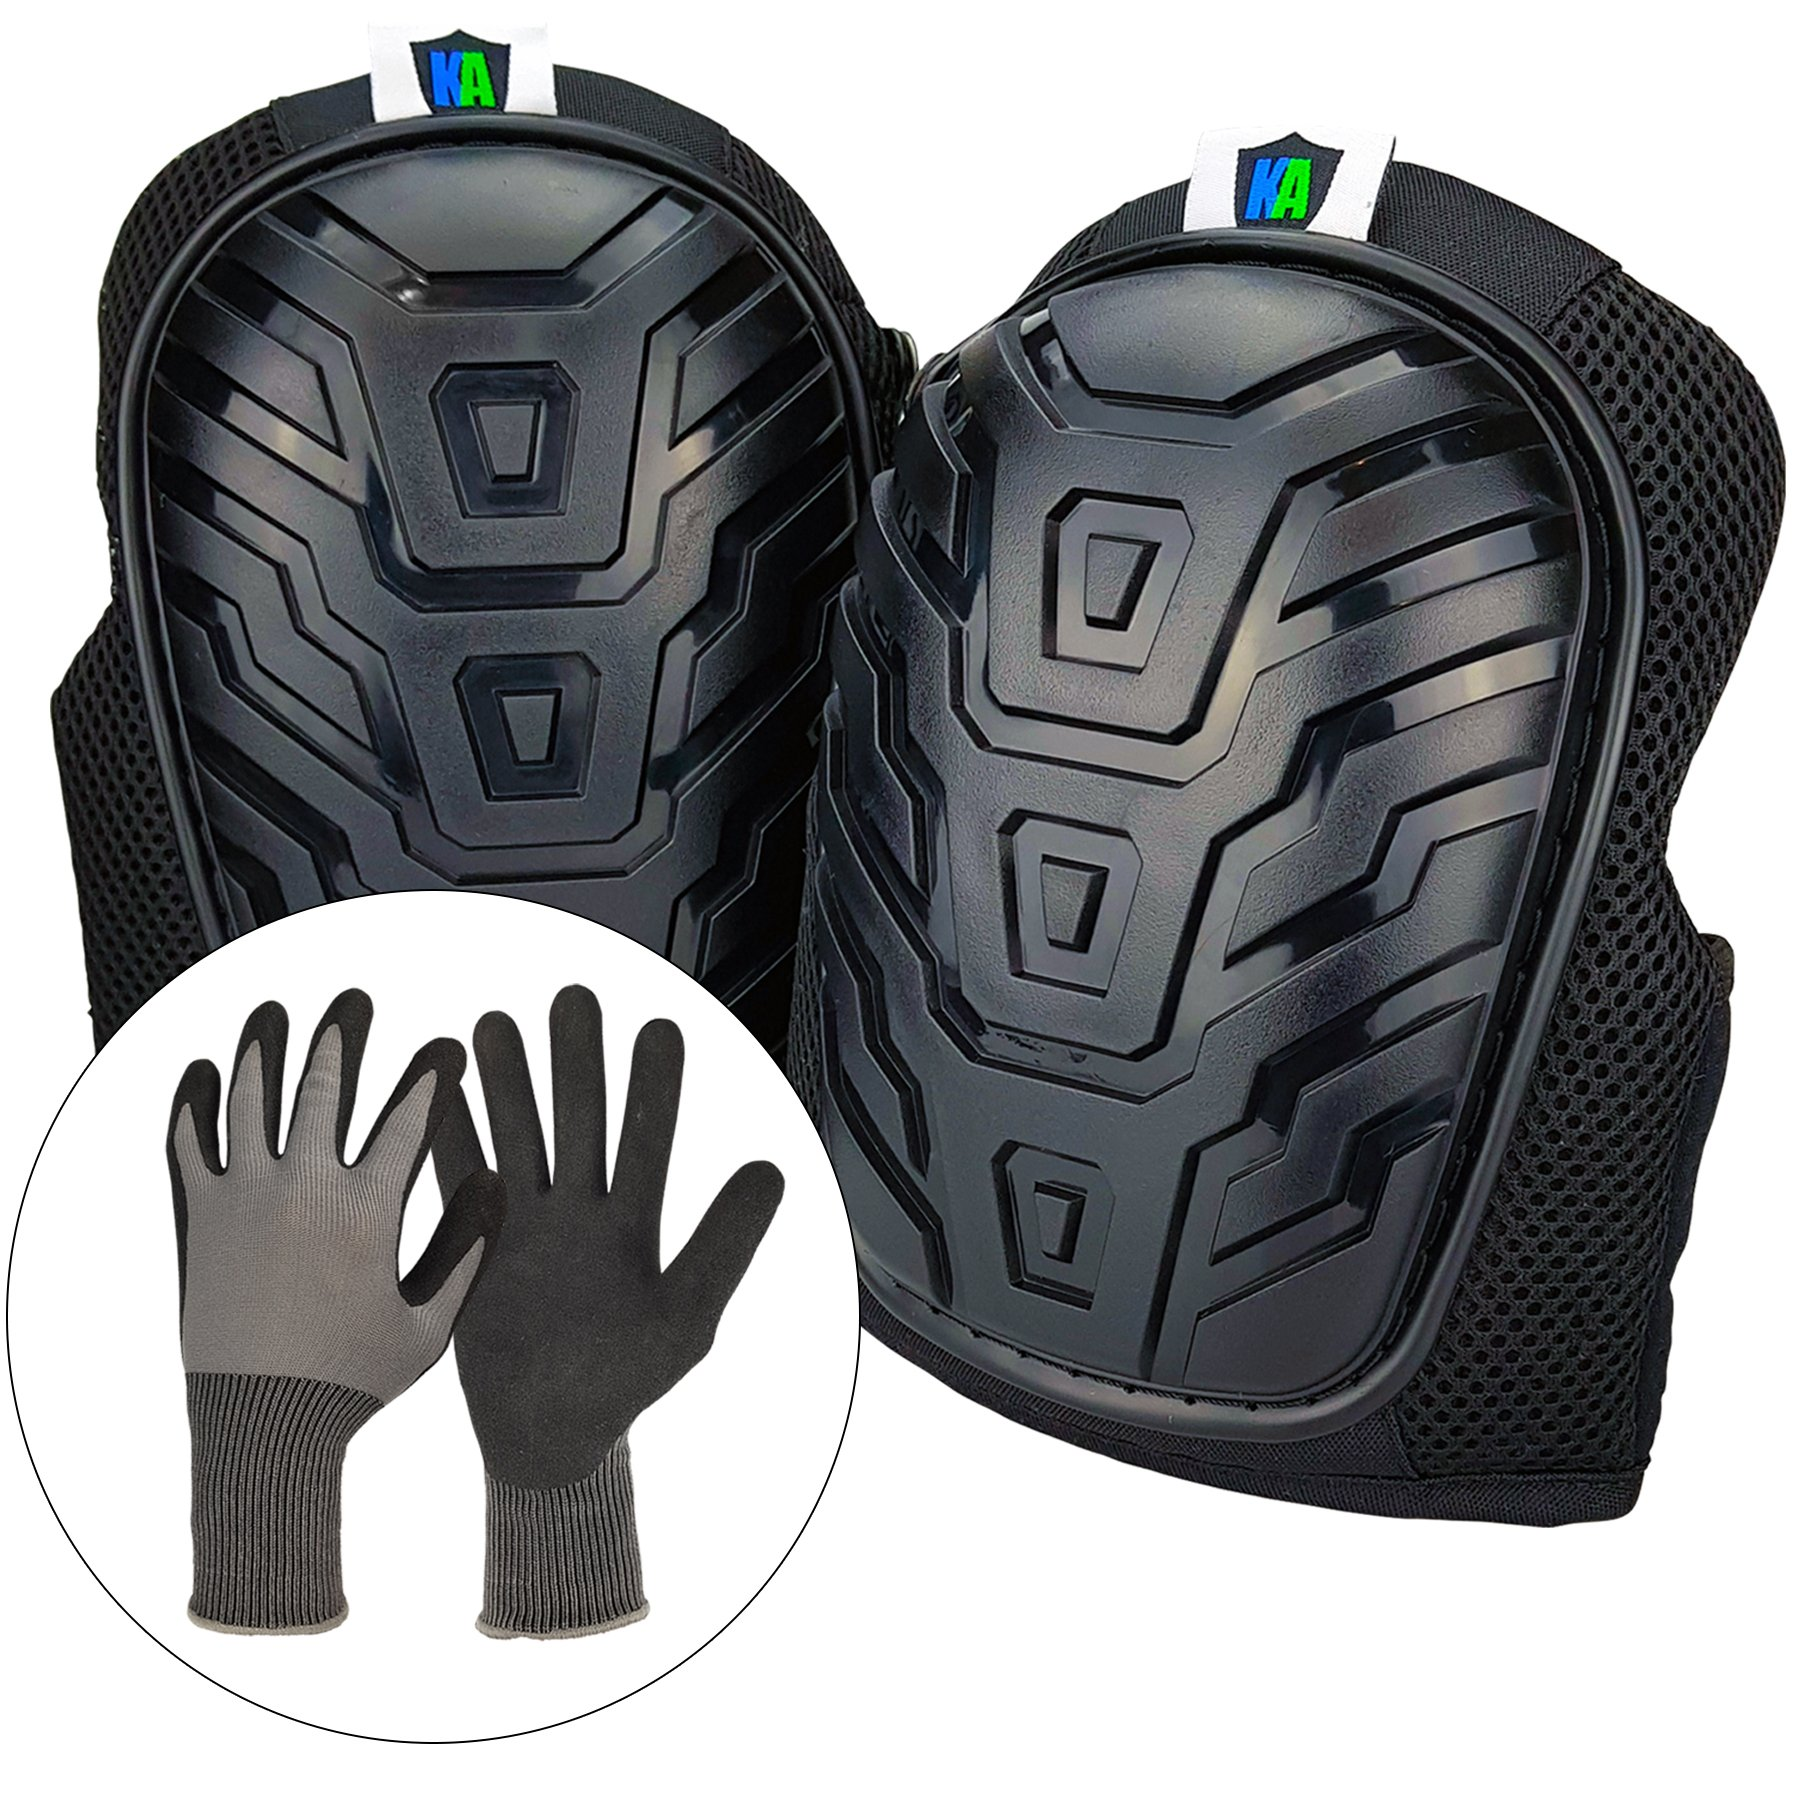 Knee Armor Heavy Duty Professional Knee Pads with Gel Cushions, EVA Foam, Adjustable Straps, Bonus Protective Gloves. Superb Knee and Hand Protection. Perfect for Construction, Gardening and More